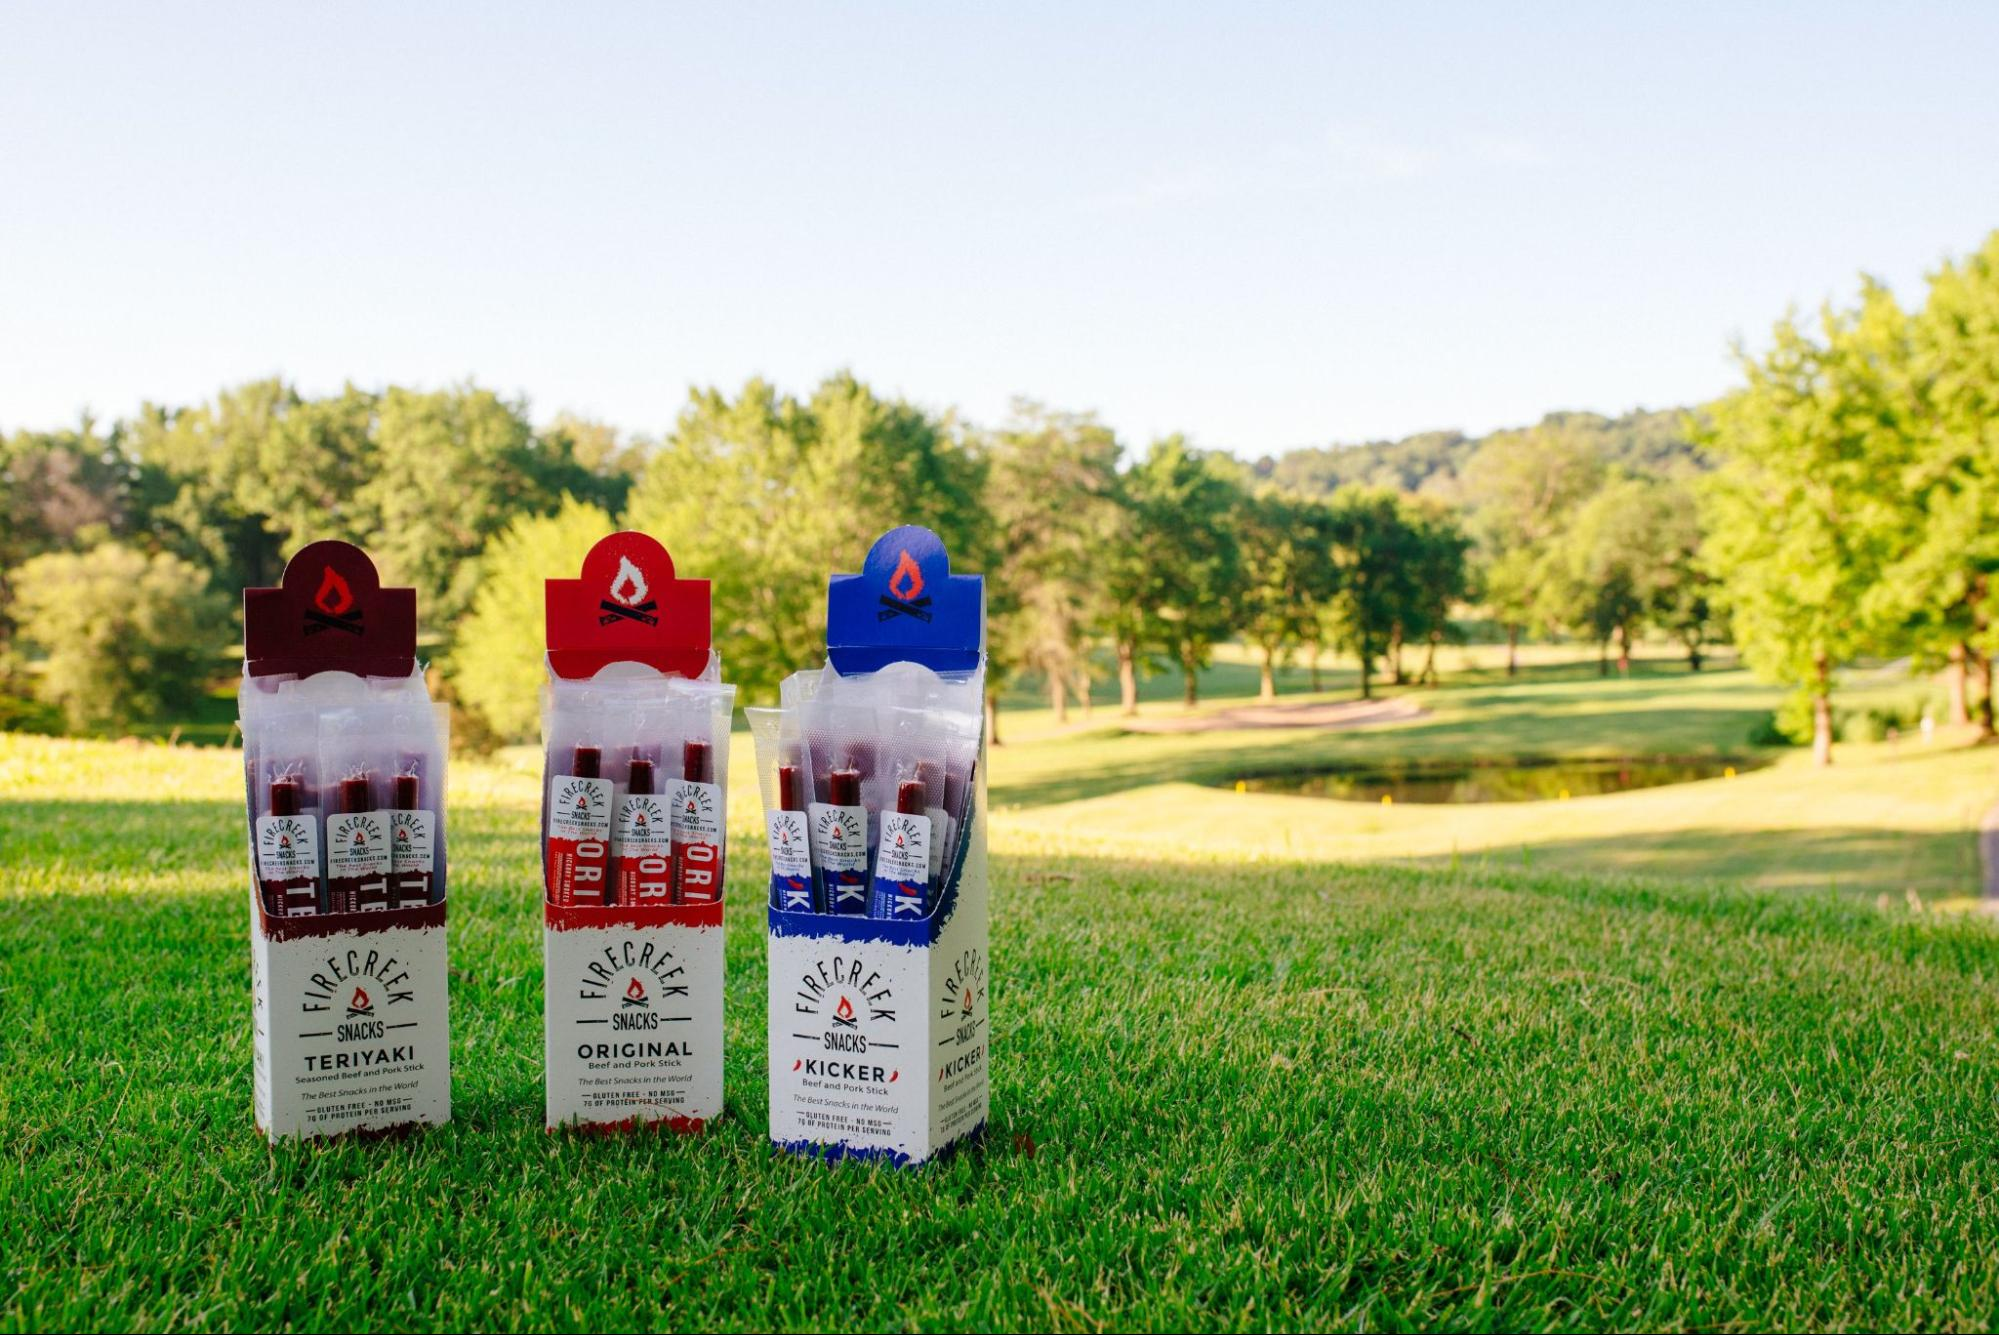 A set of different jerky from FireCreek Snacks backdropped by a park setting.